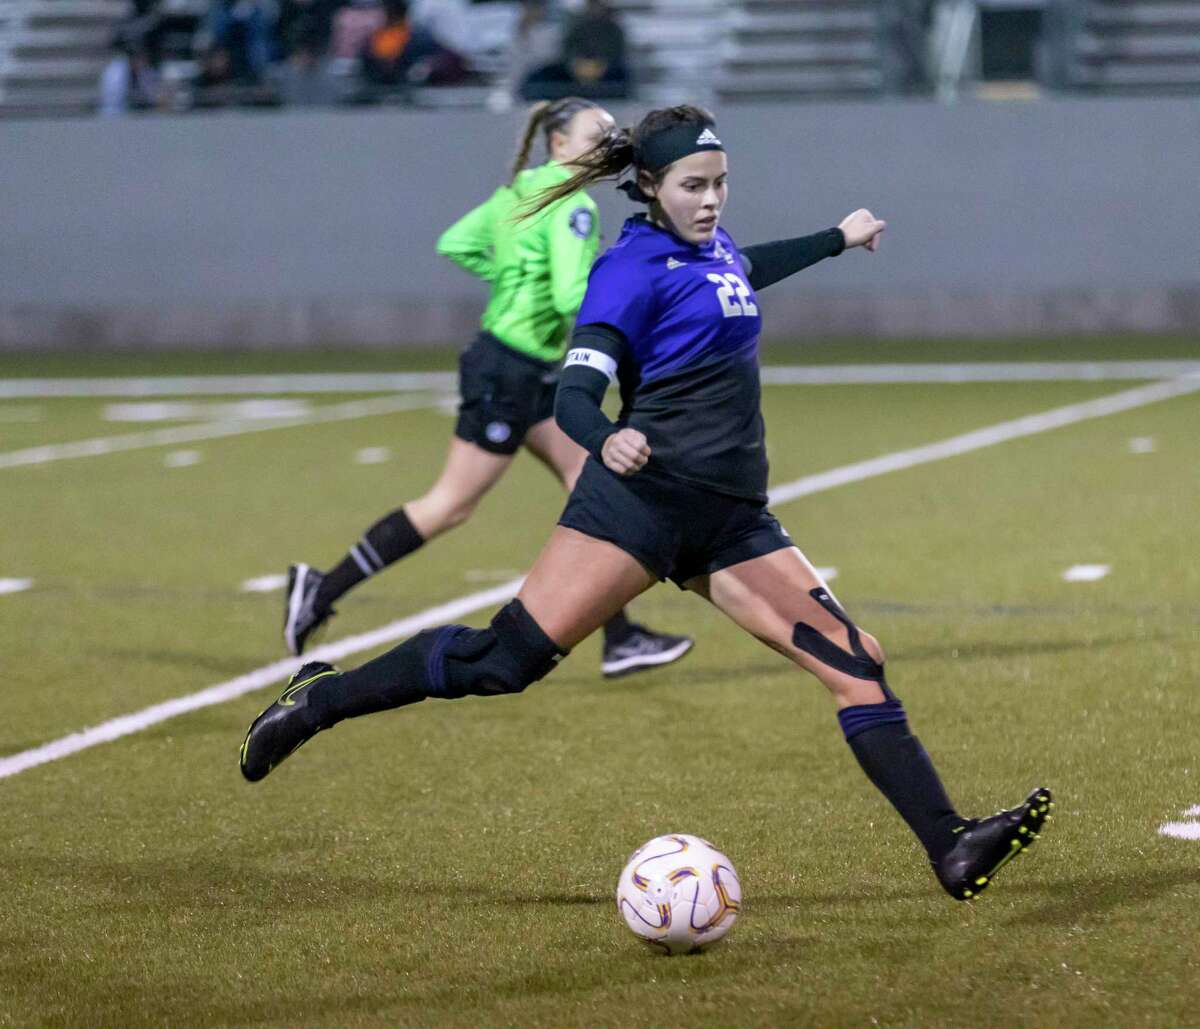 Montgomery midfielder Zoey Prelli (22) kicks thee ball with power in a District 20-5A match against Huntsville high school in Montgomery, Friday, Jan. 31, 2020.